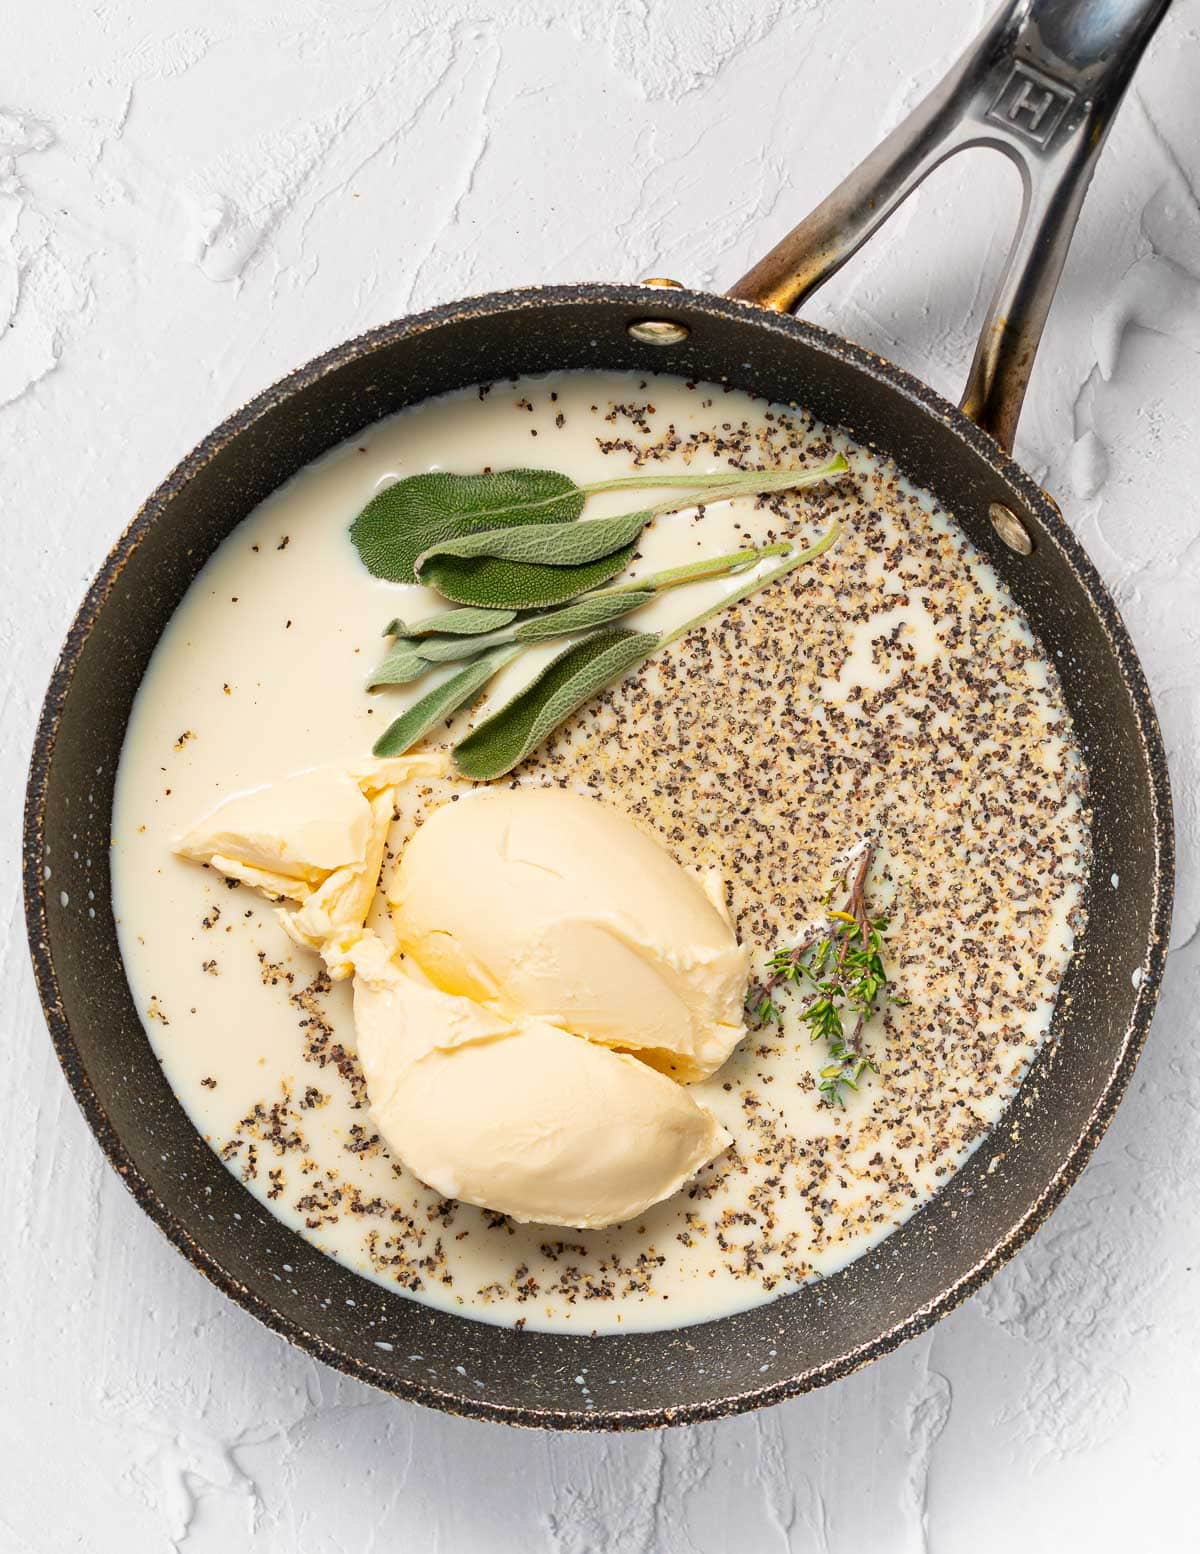 soy milk, vegan butter, pepper and herbs in a pan